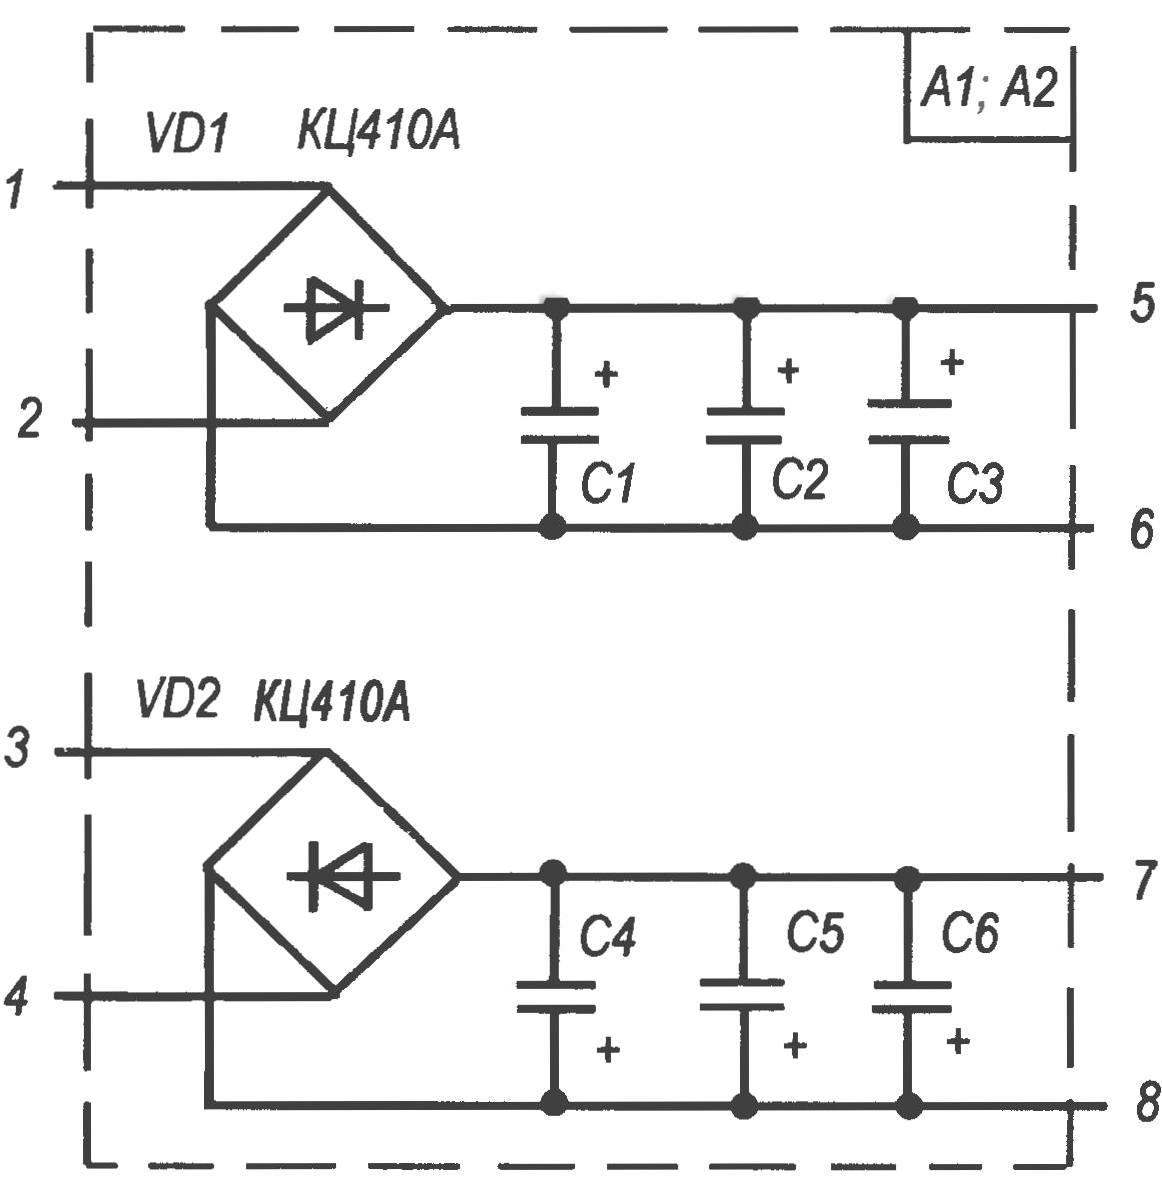 Diagram of bridge rectifier modules A1 and A2. The difference in the performance of the modules